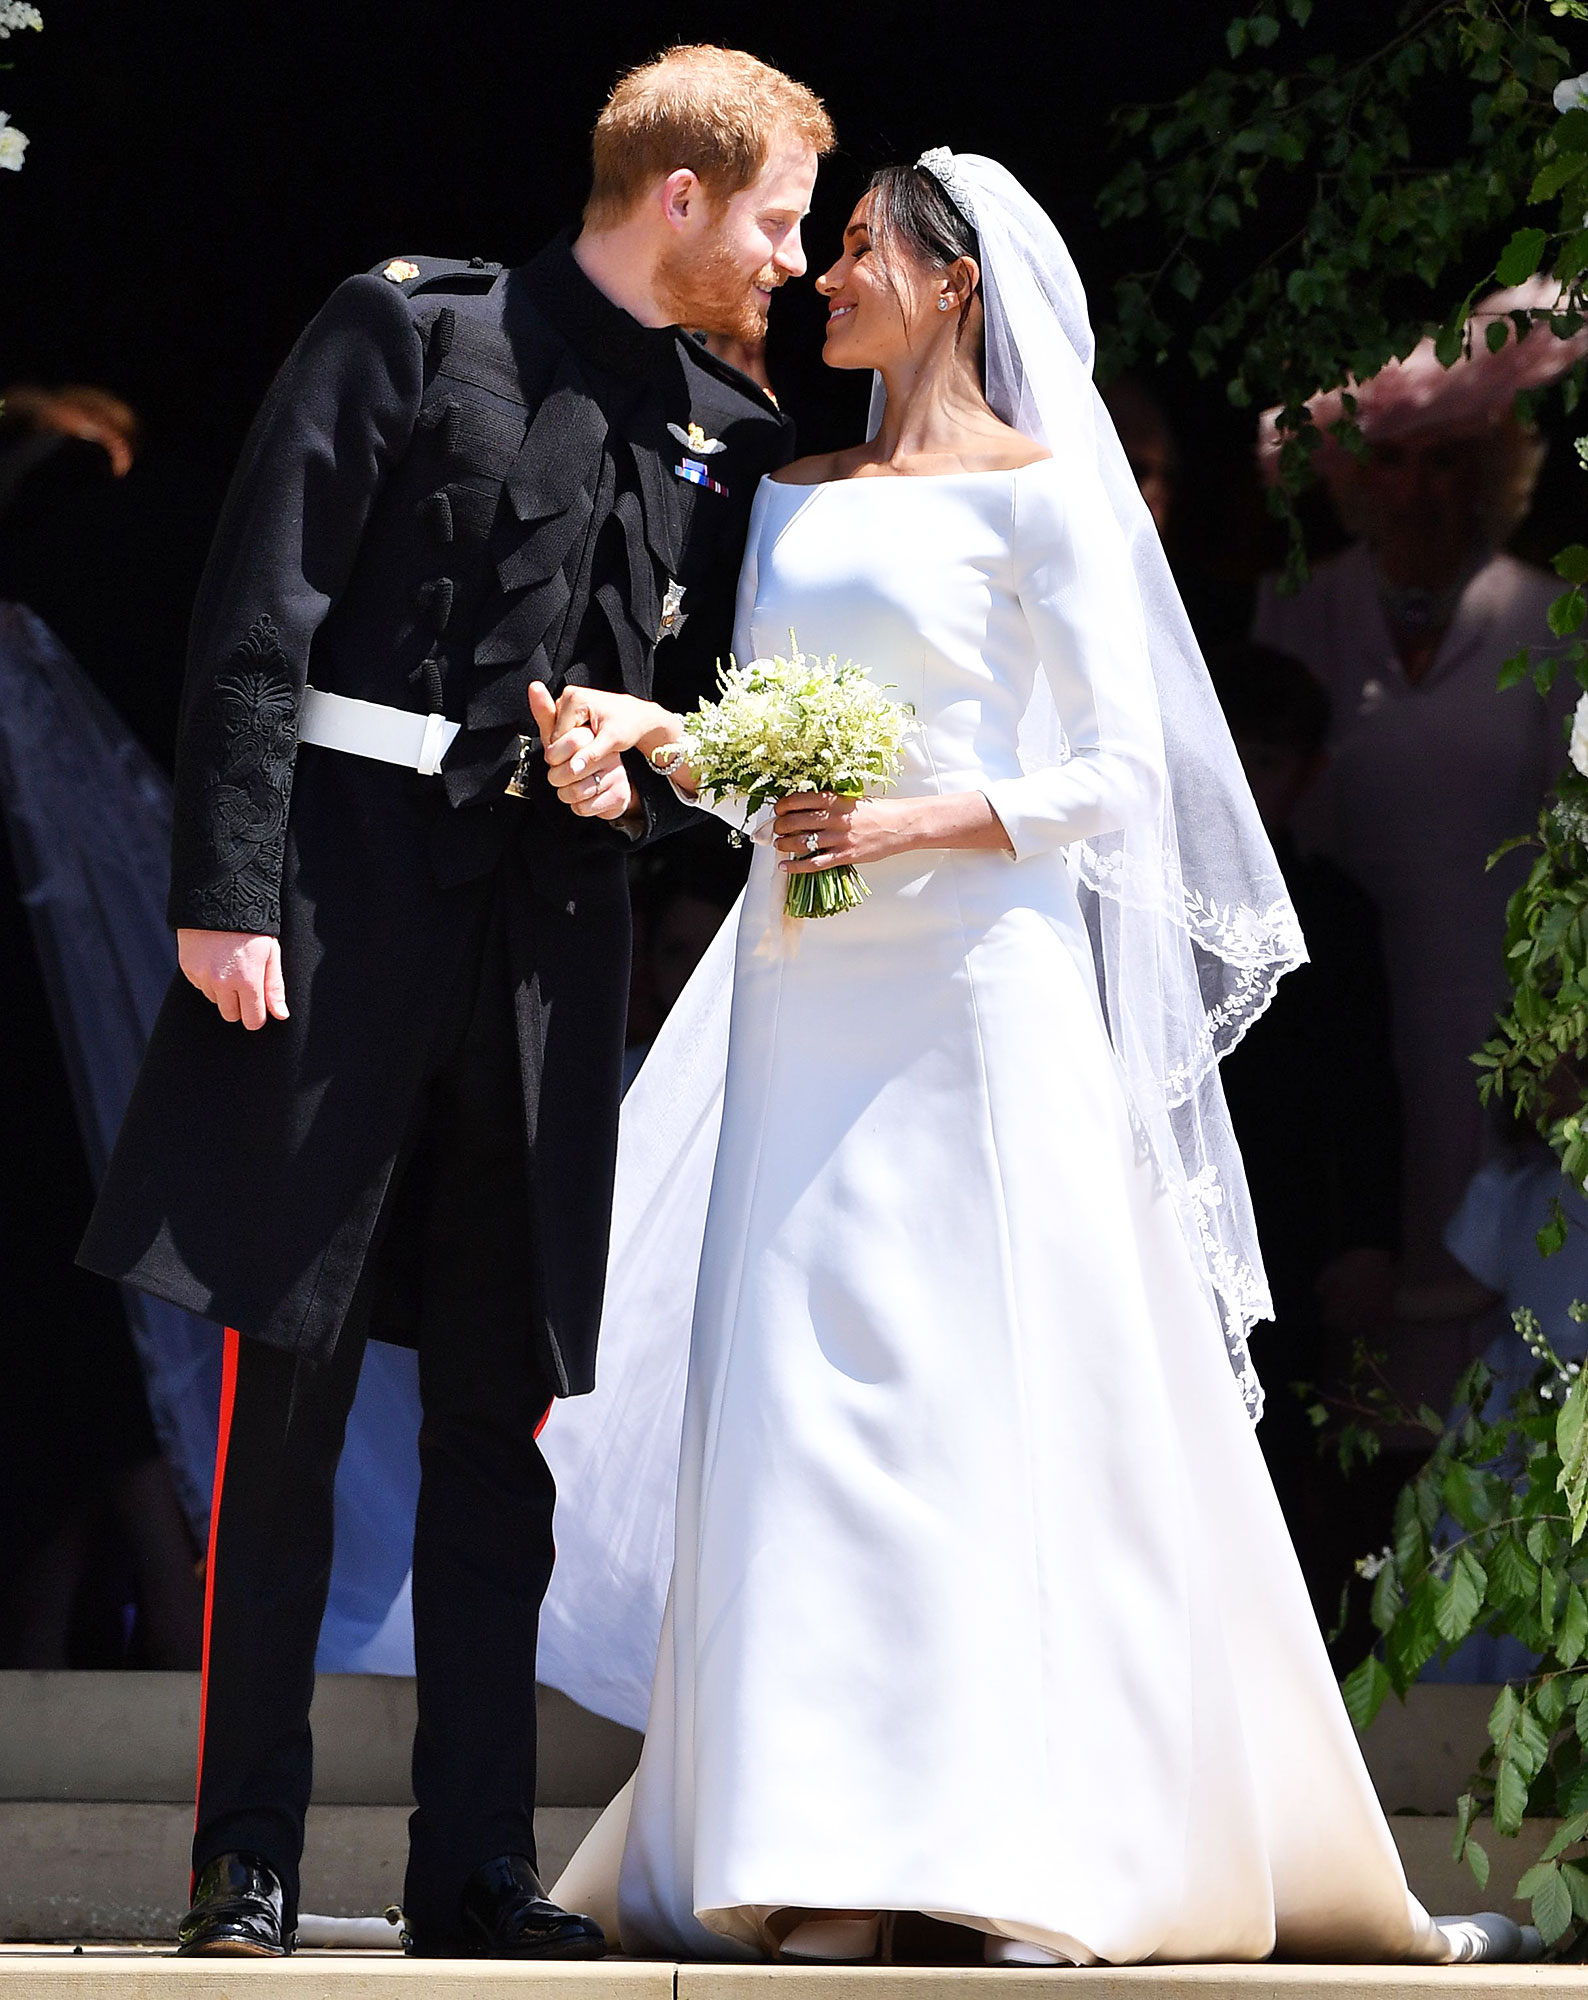 Anna Wintour Thoughts Duchess Meghan Wedding Dress - Prince Harry and Duchess Meghan emerge from the West Door of St George's Chapel, Windsor Castle on May 19, 2018 after their wedding ceremony.